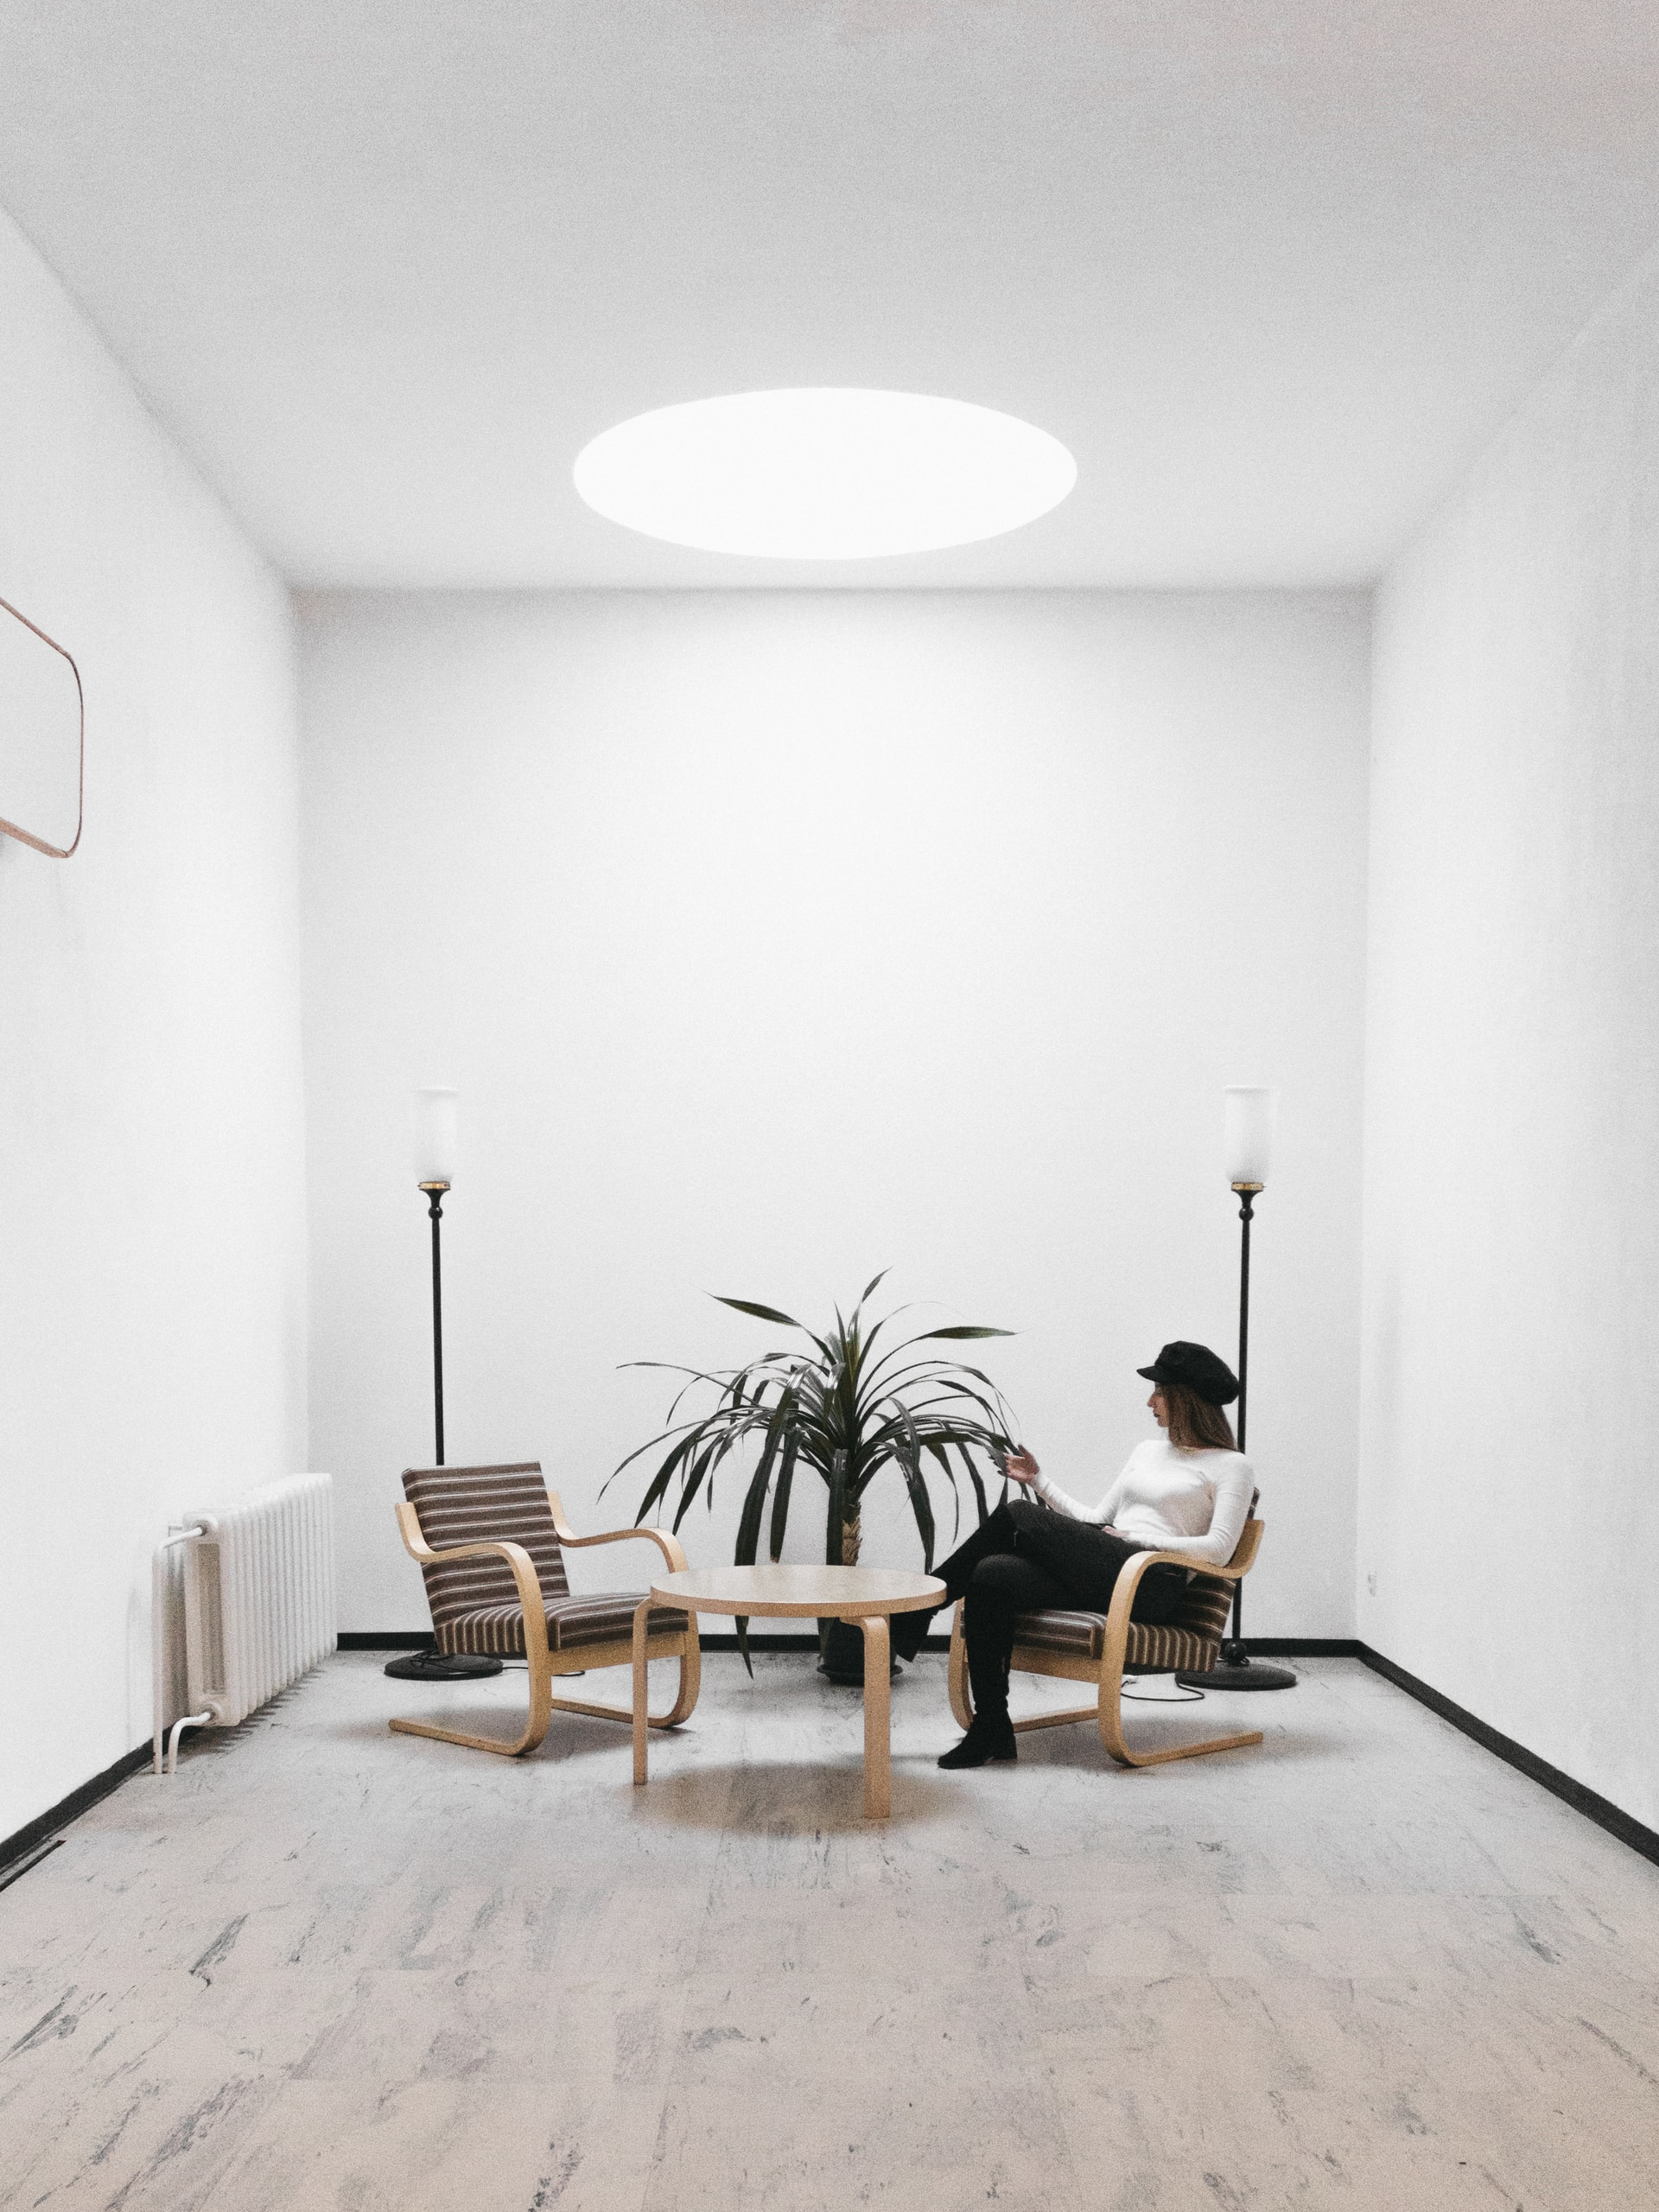 """man in black shirt sitting on brown wooden chair  - photo 1583396796390 6da043f2ba3c ixlib rb 1 - How to use """"Light"""" in your home"""